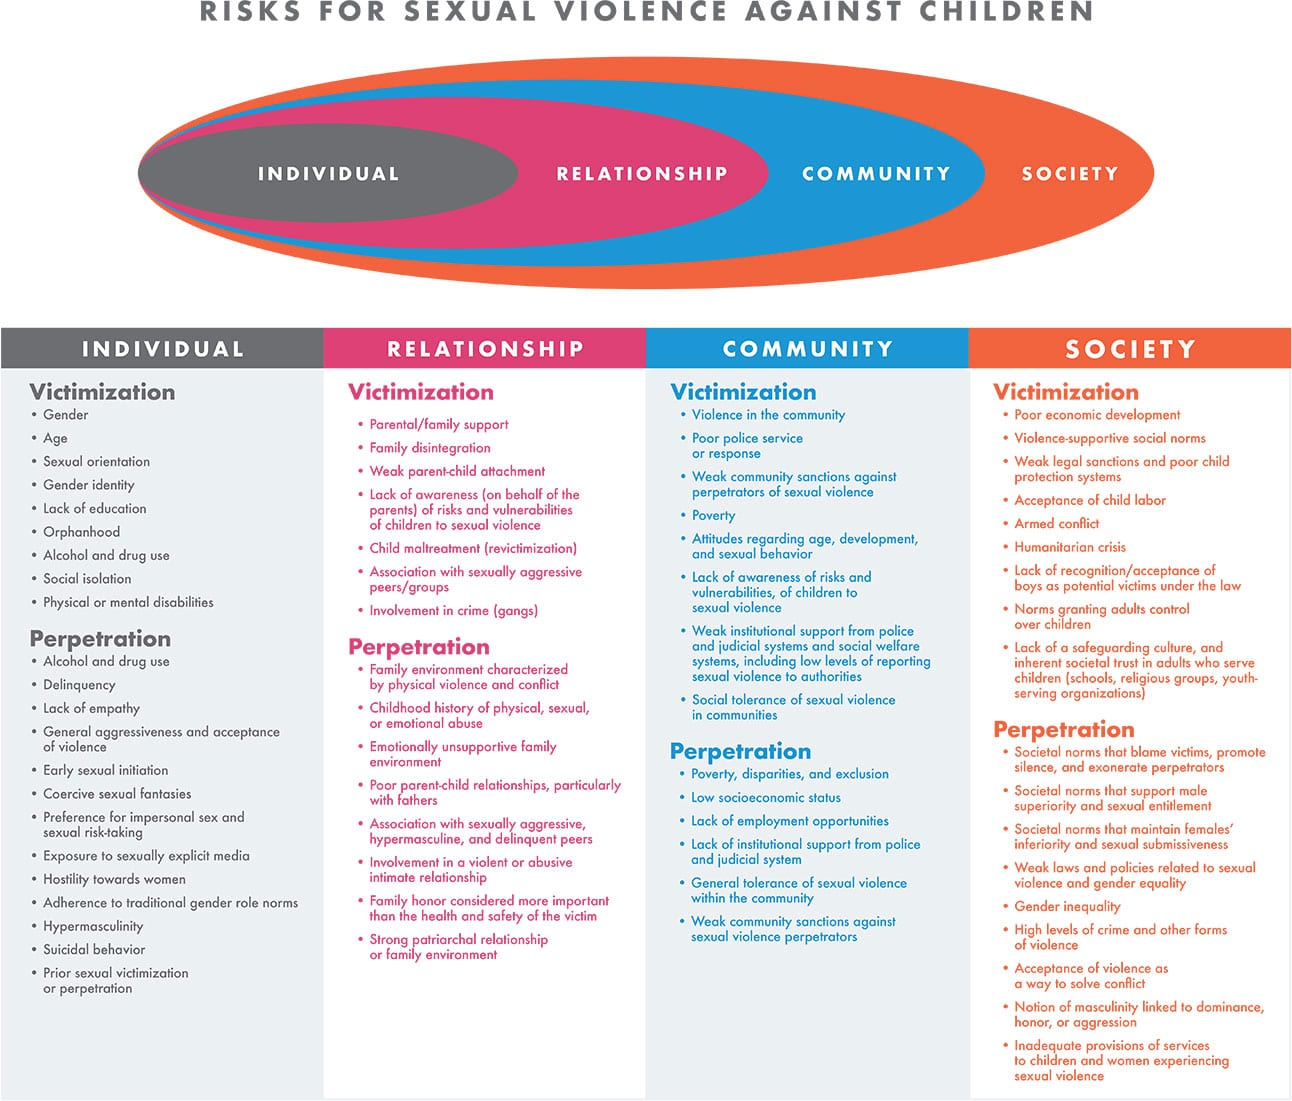 svsolutions graph1 - SVSolutions - Sexual Violence Against Children